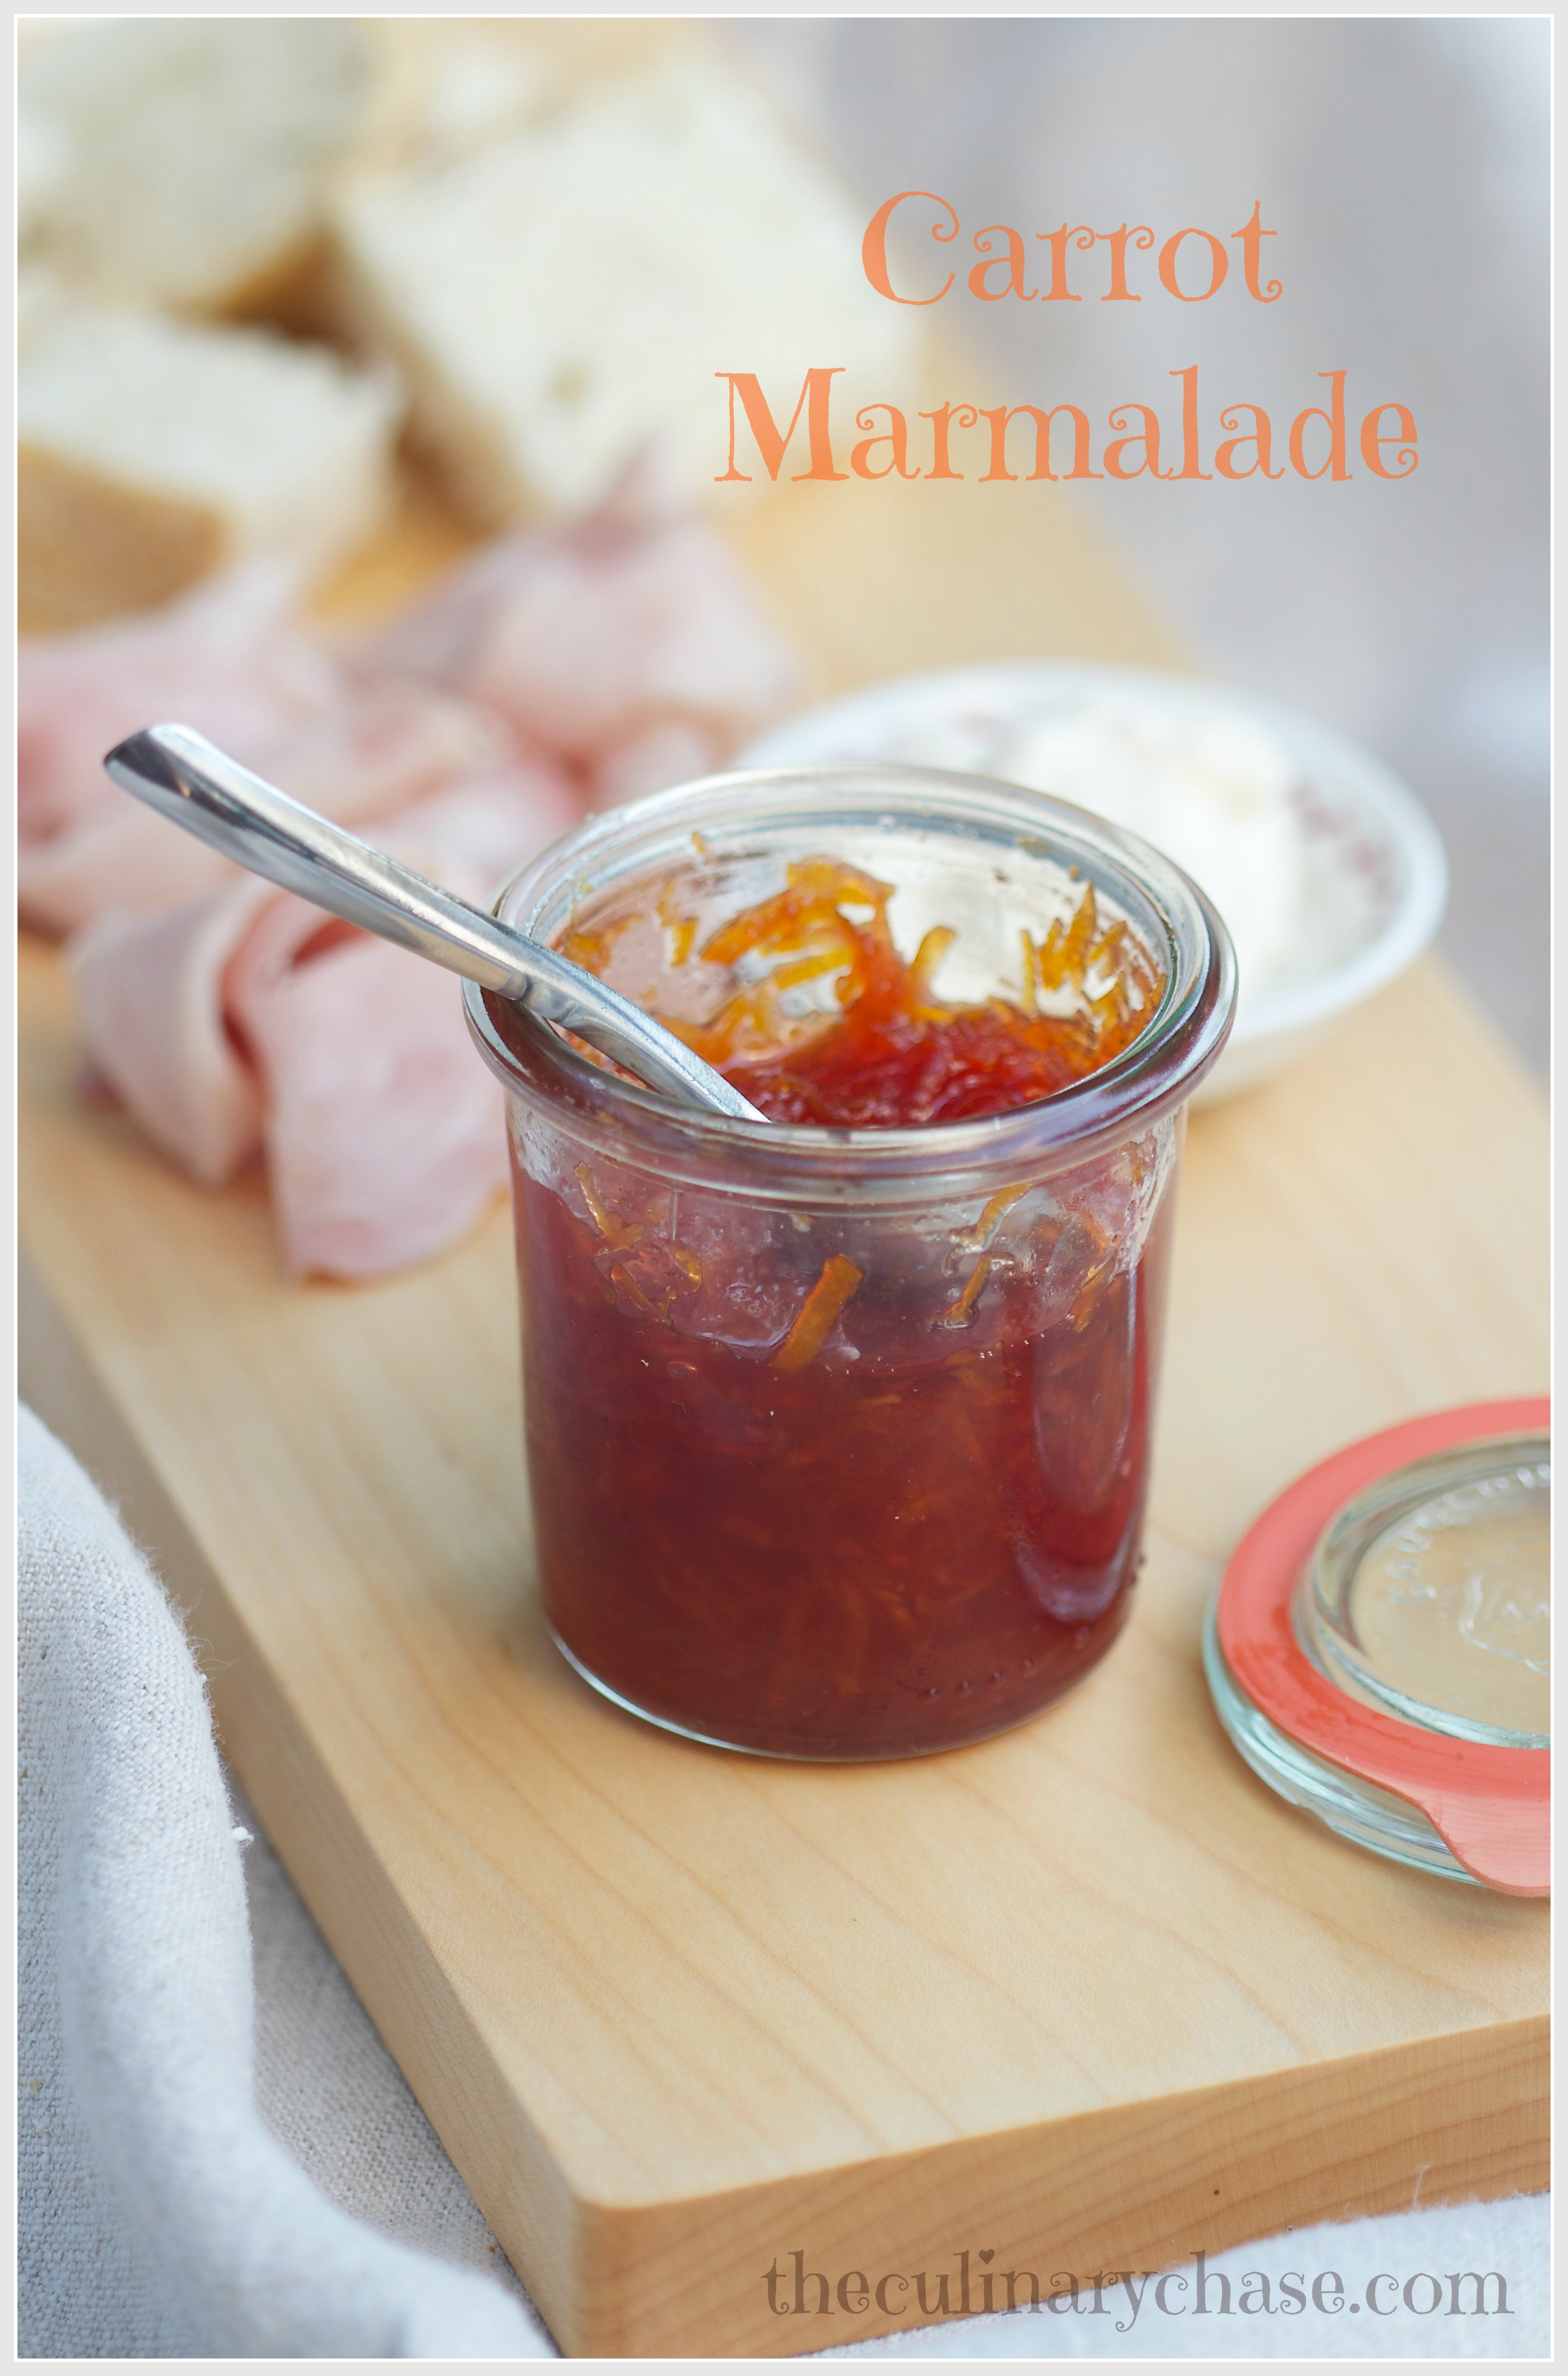 theculinarychase.com_wp-content_uploads_2013_08_carrot-marmalade-by-The-Culinary-Chase